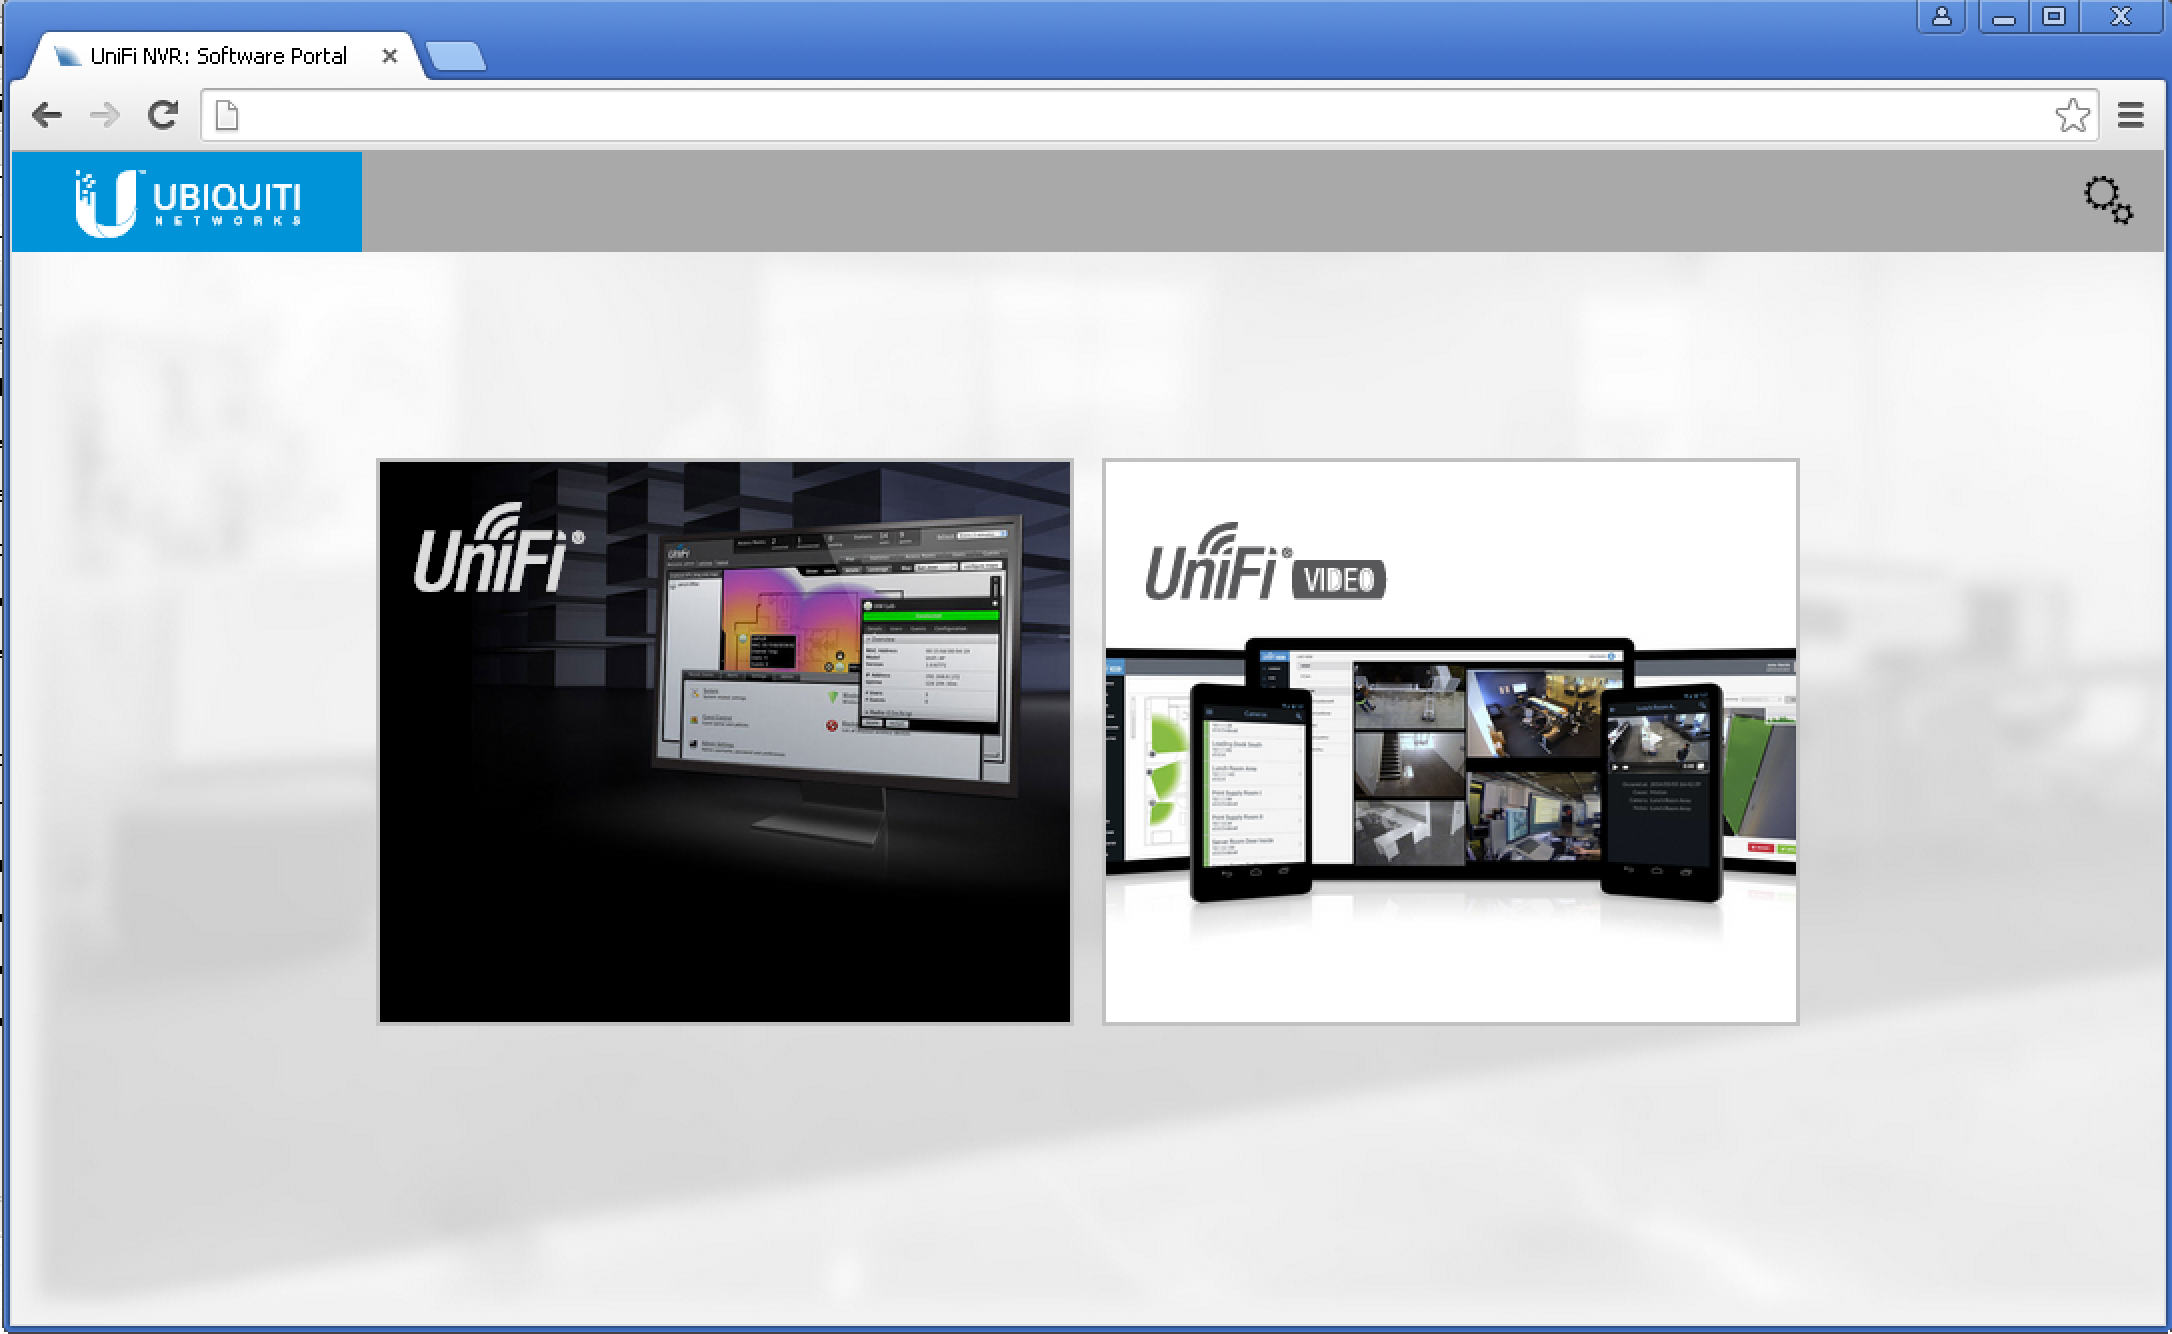 UniFi – Install the controller software on the UniFi-Video NVR